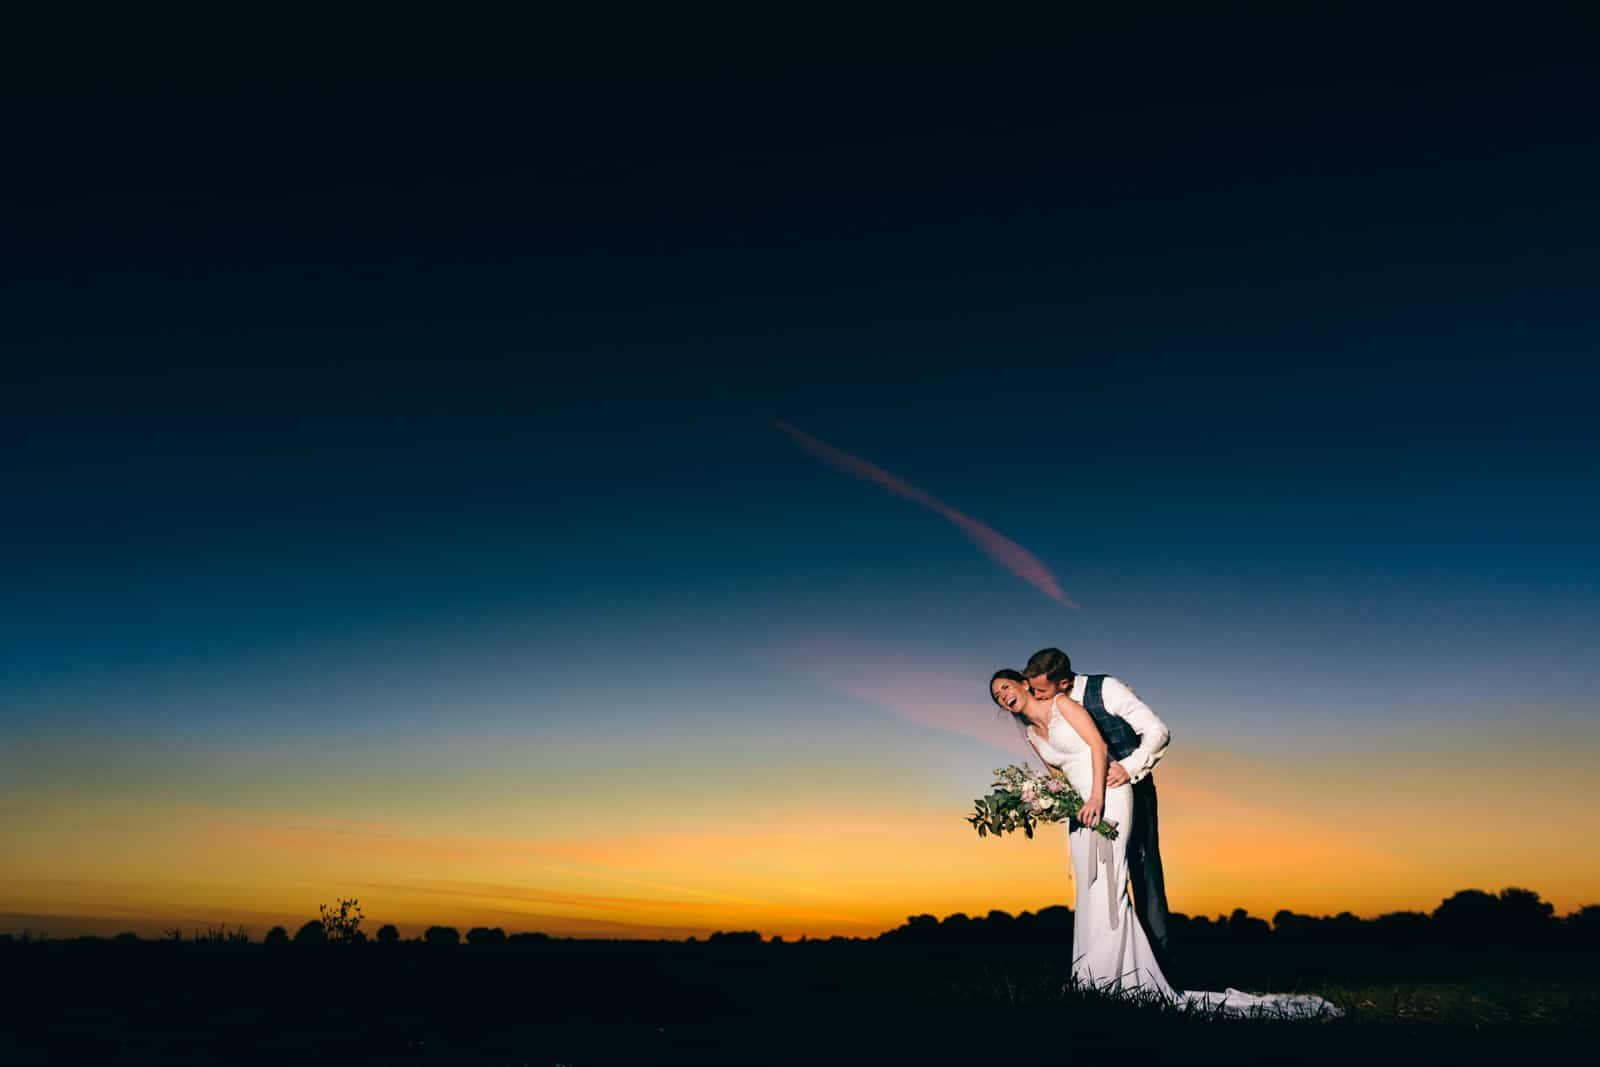 Wedding Photographers in Warwickshire capturing this beautiful wedding and their guests all waving